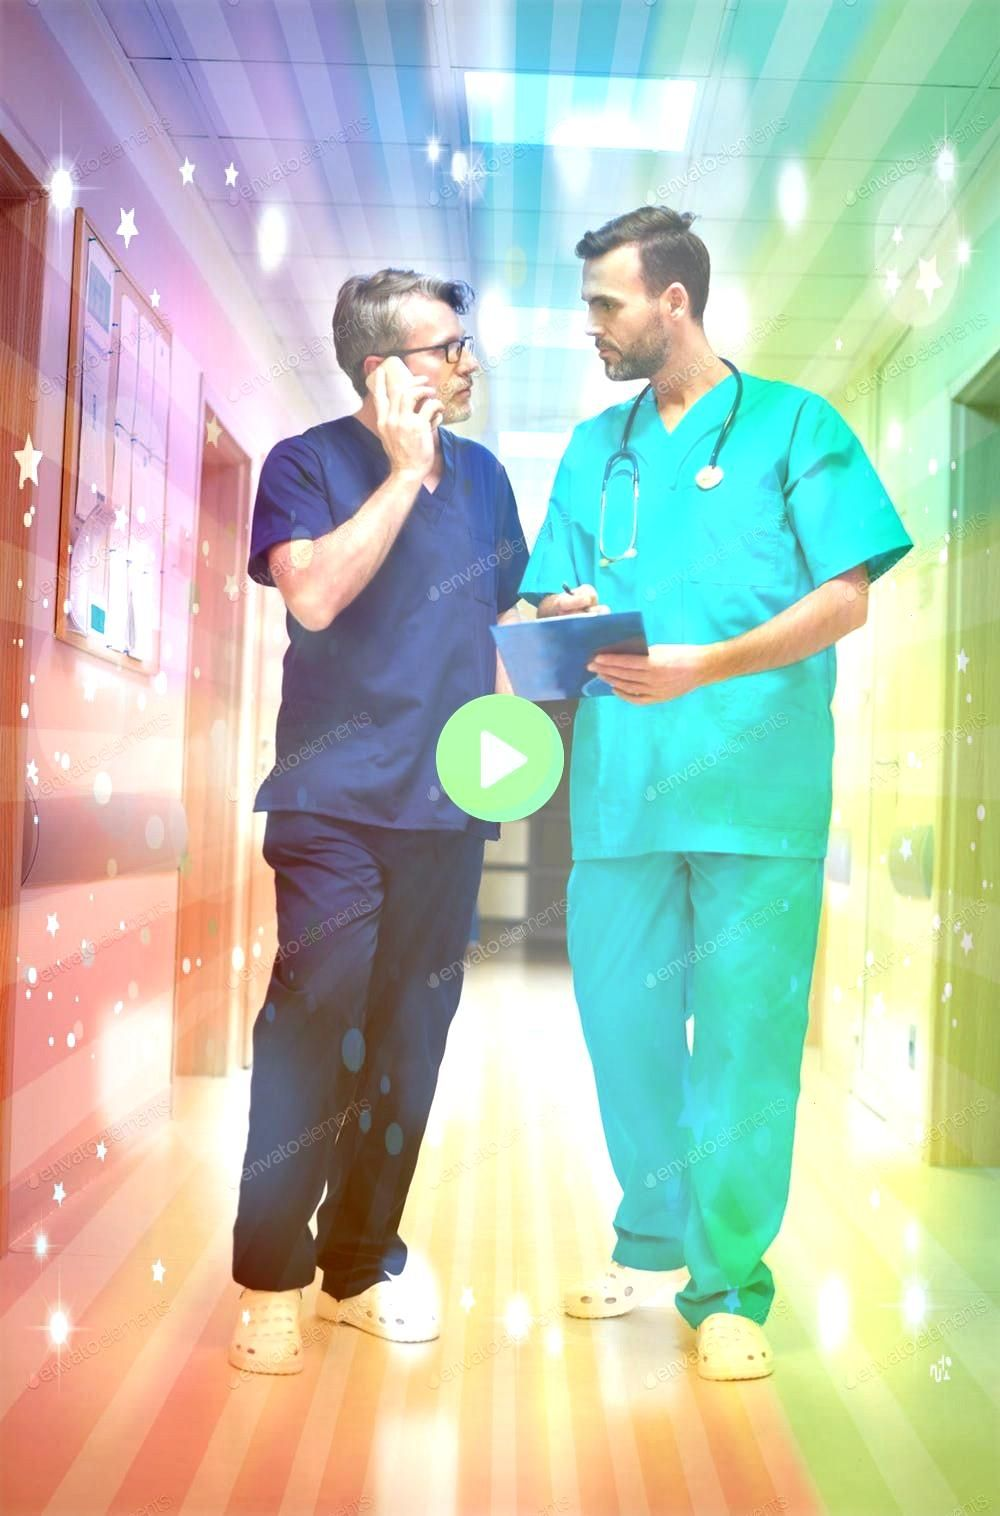 busy doctors on the corridor By gpointstudios photos Two busy doctors on the corridor By gpointstudios photos  Social media and teamwork icons Doodle images Management bu...